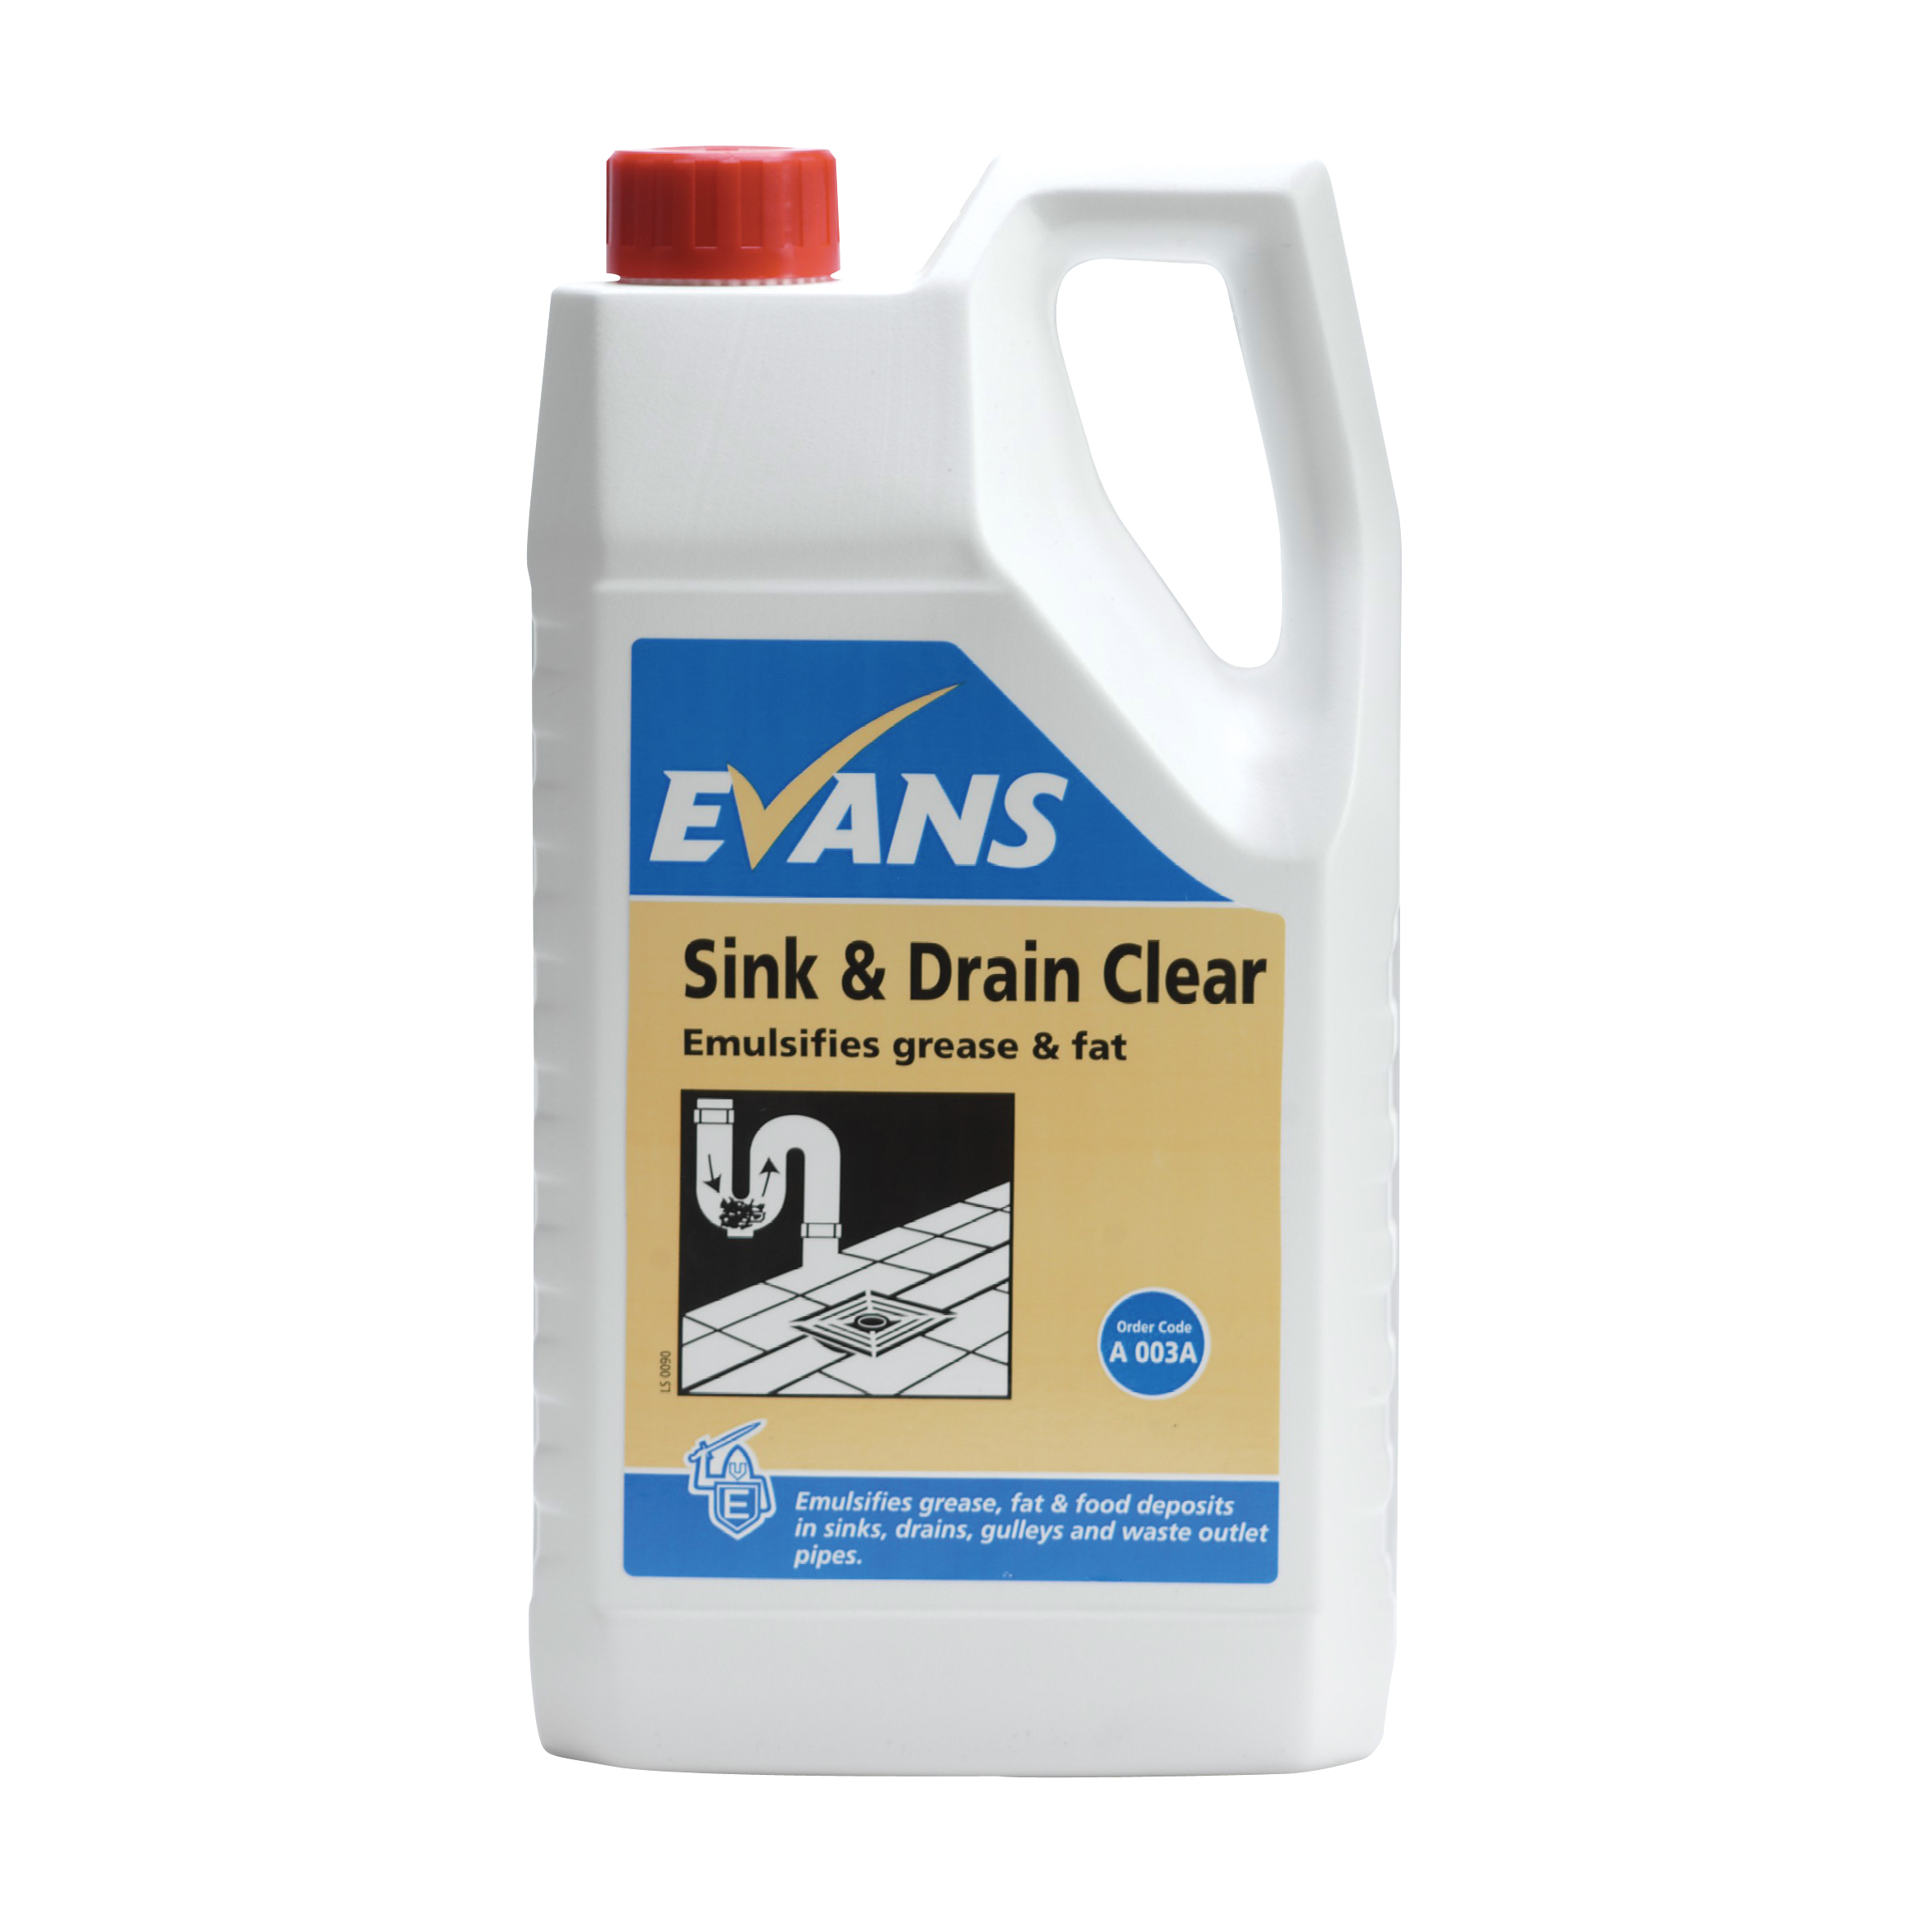 Evans Vanodine Sink And Drain Clear Powerful High Active